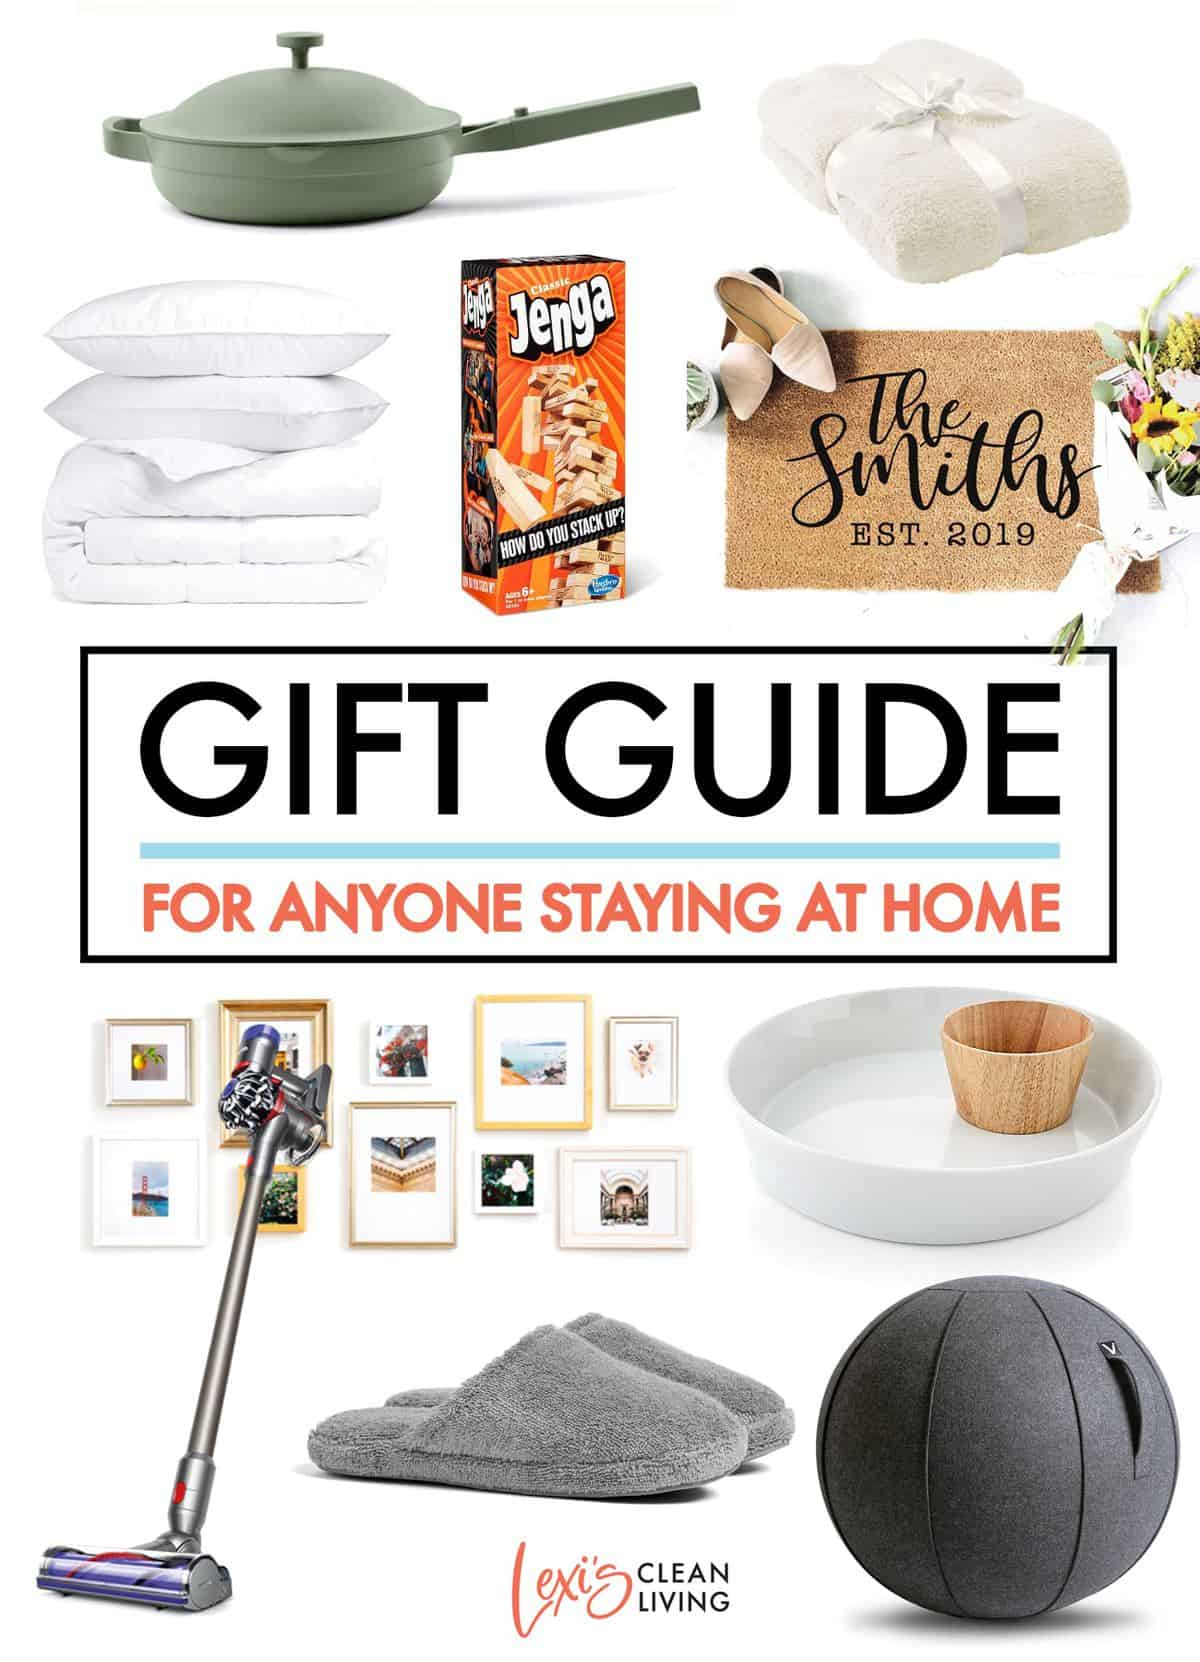 2020 Holiday Gift Guide for Staying Home